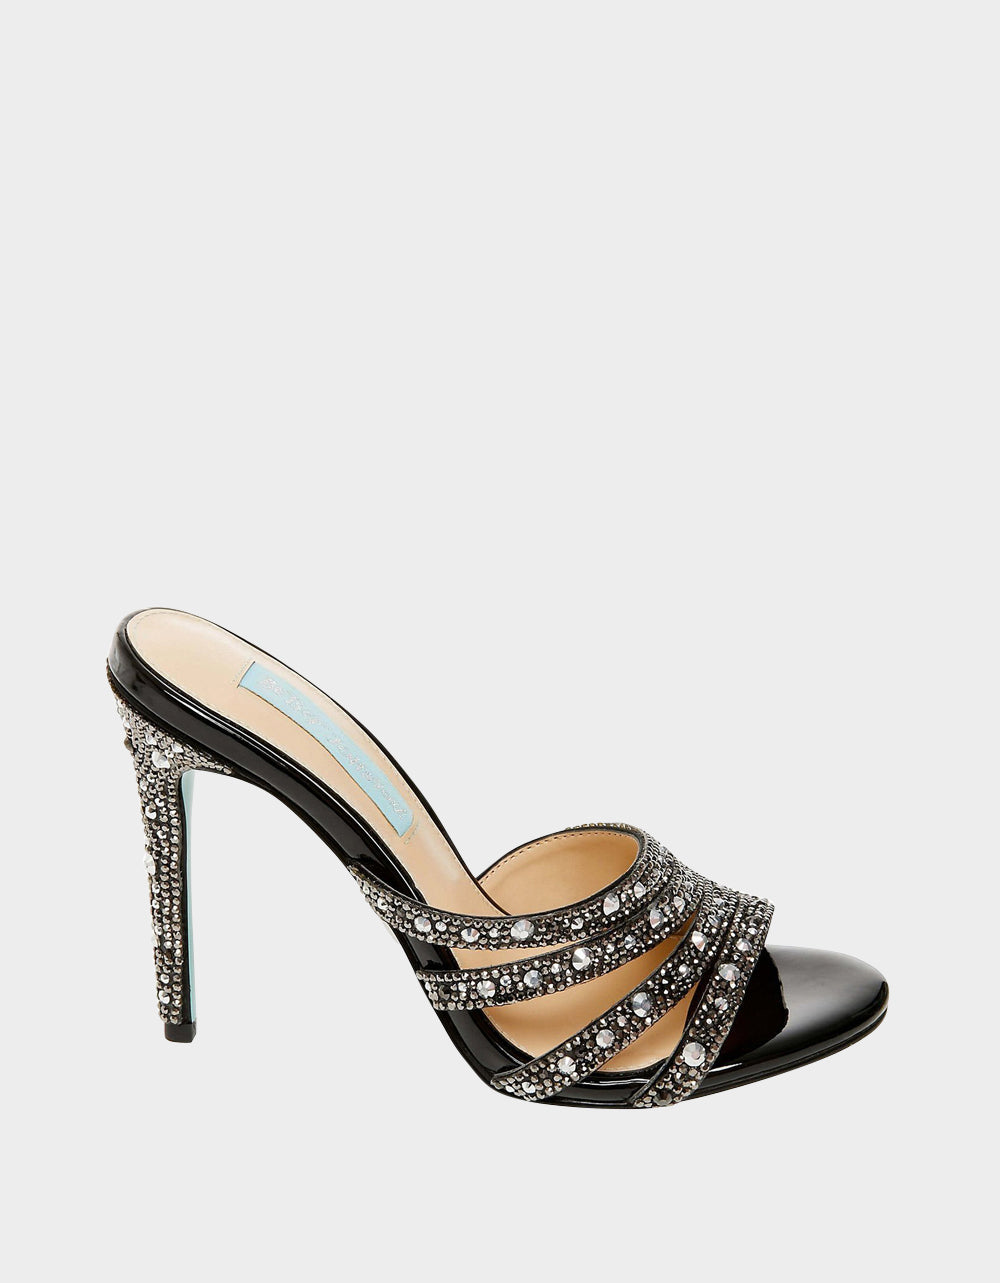 SB-RIRI BLACK - SHOES - Betsey Johnson